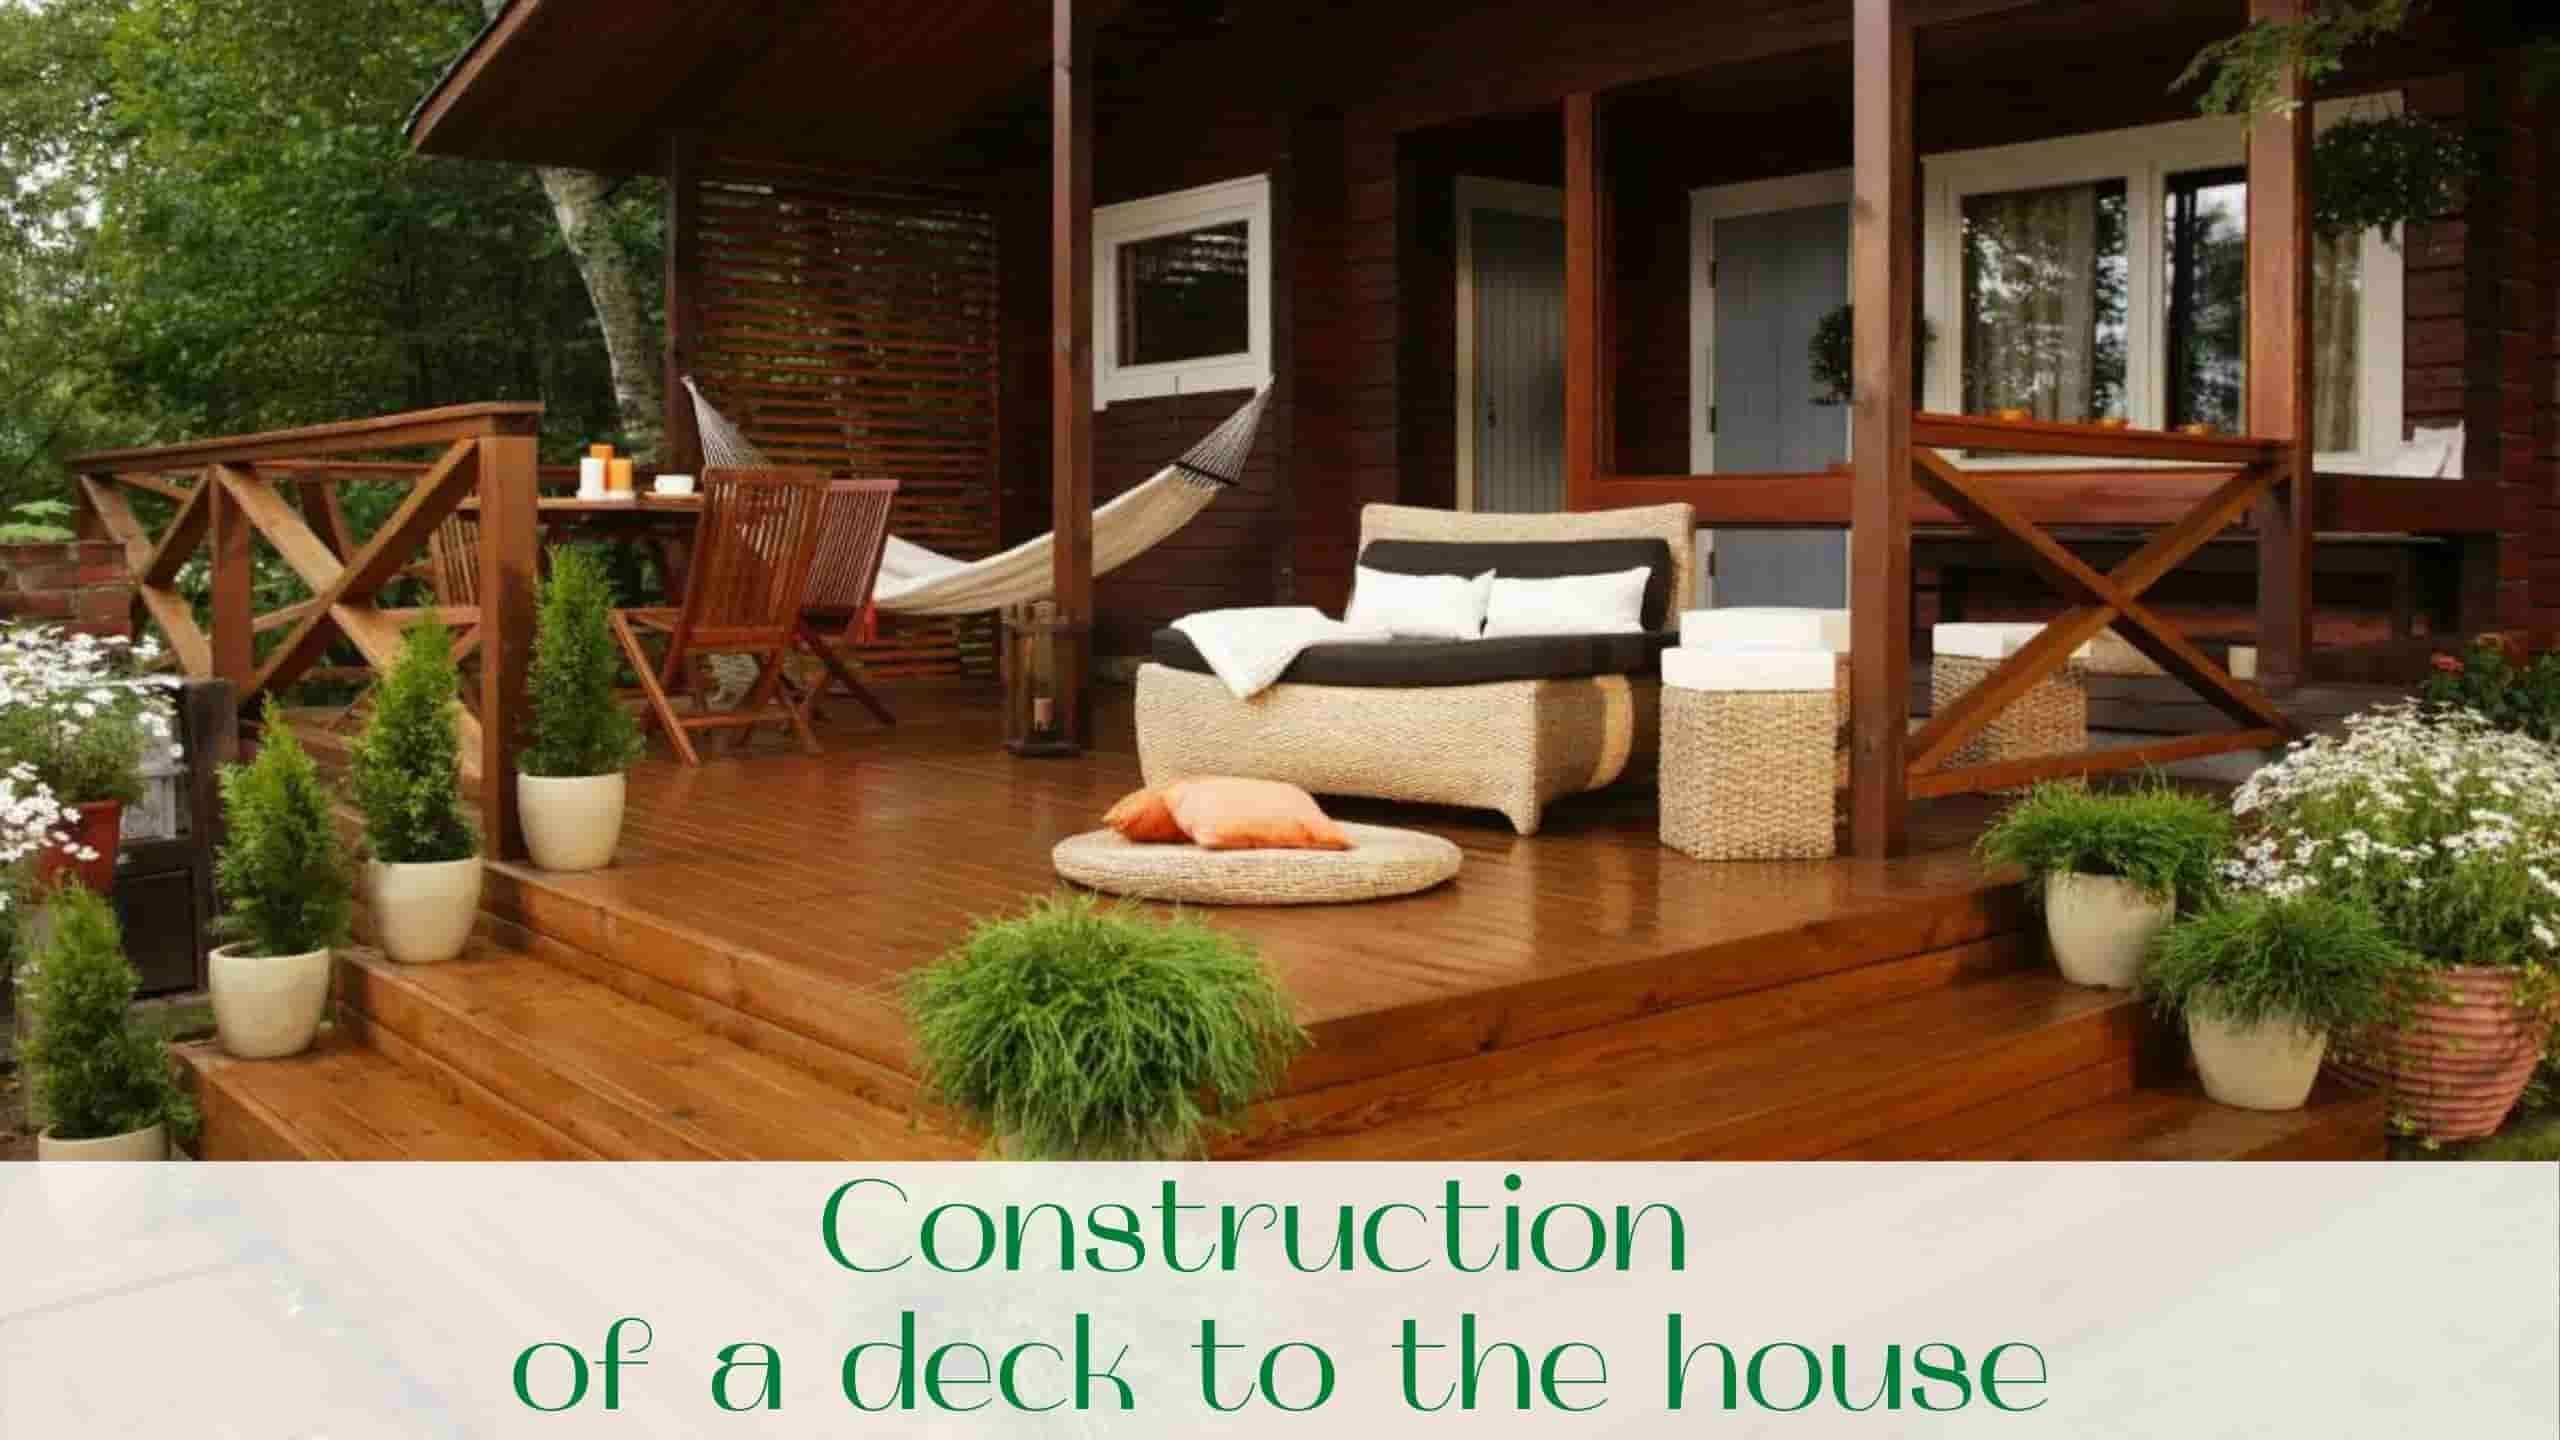 image-Construction-of-a-deck-to-the-house